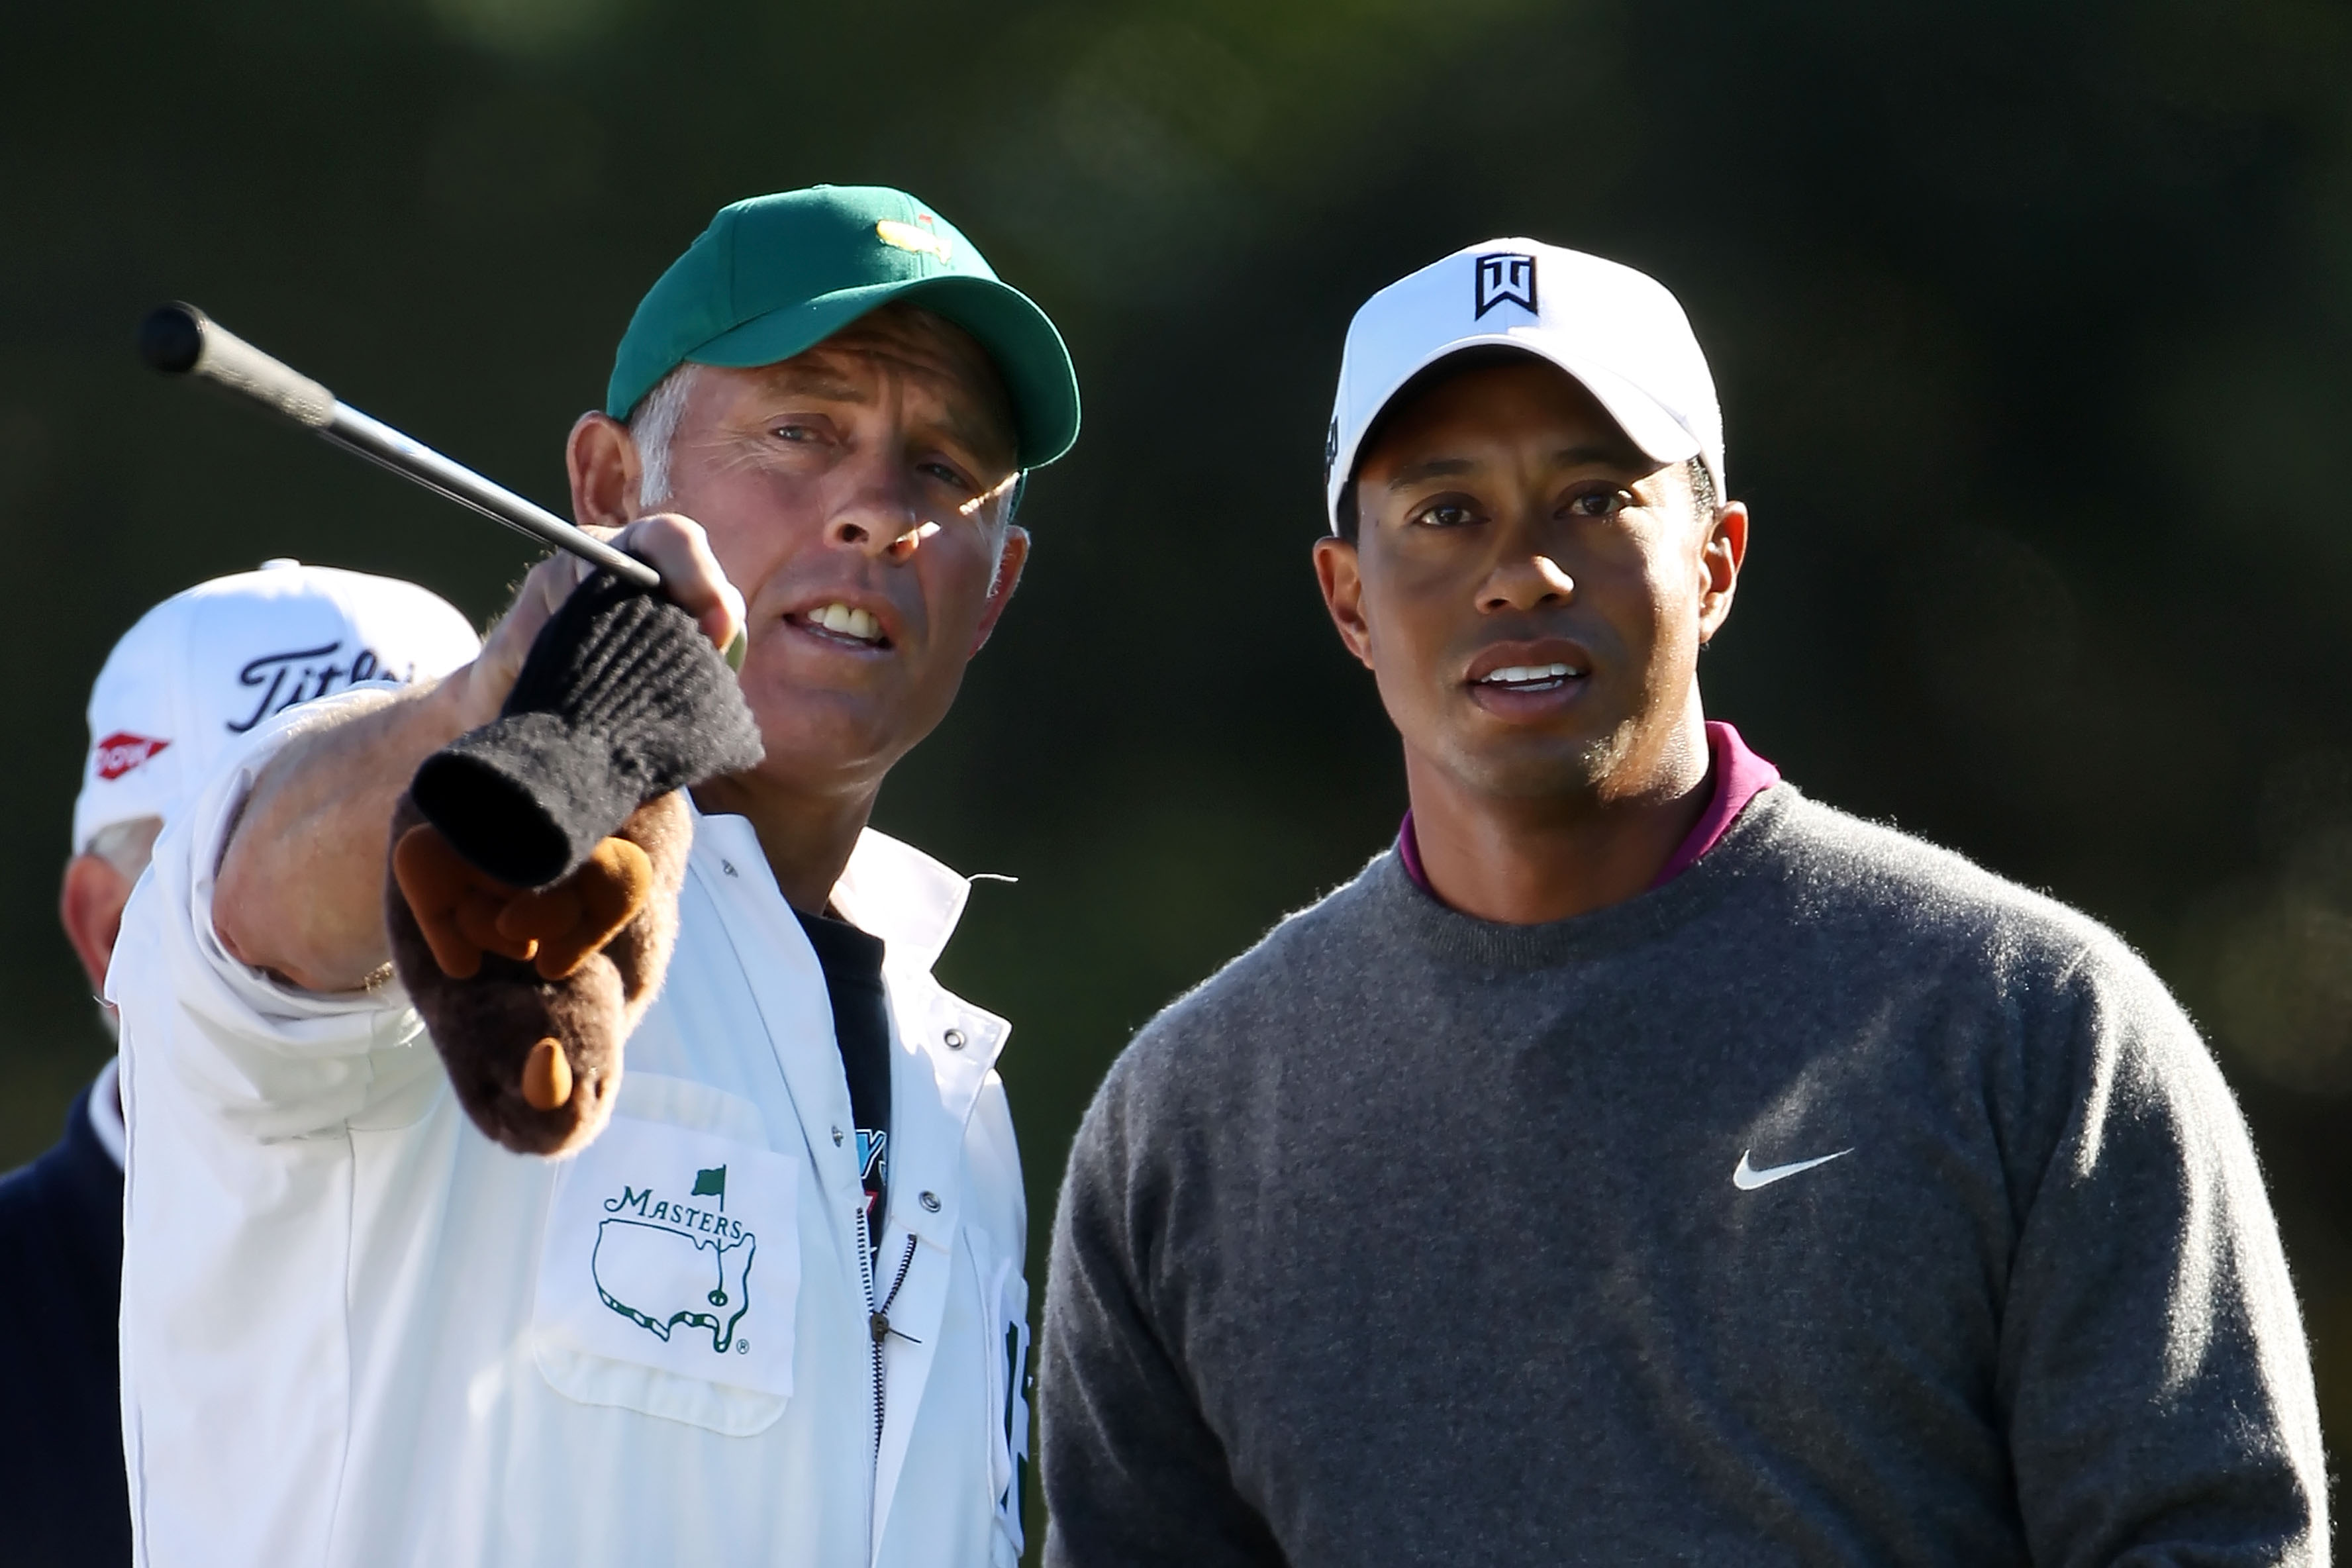 Former Tiger Woods Caddie Steve Williams Shocks Golf World With Racial Woods Comment!